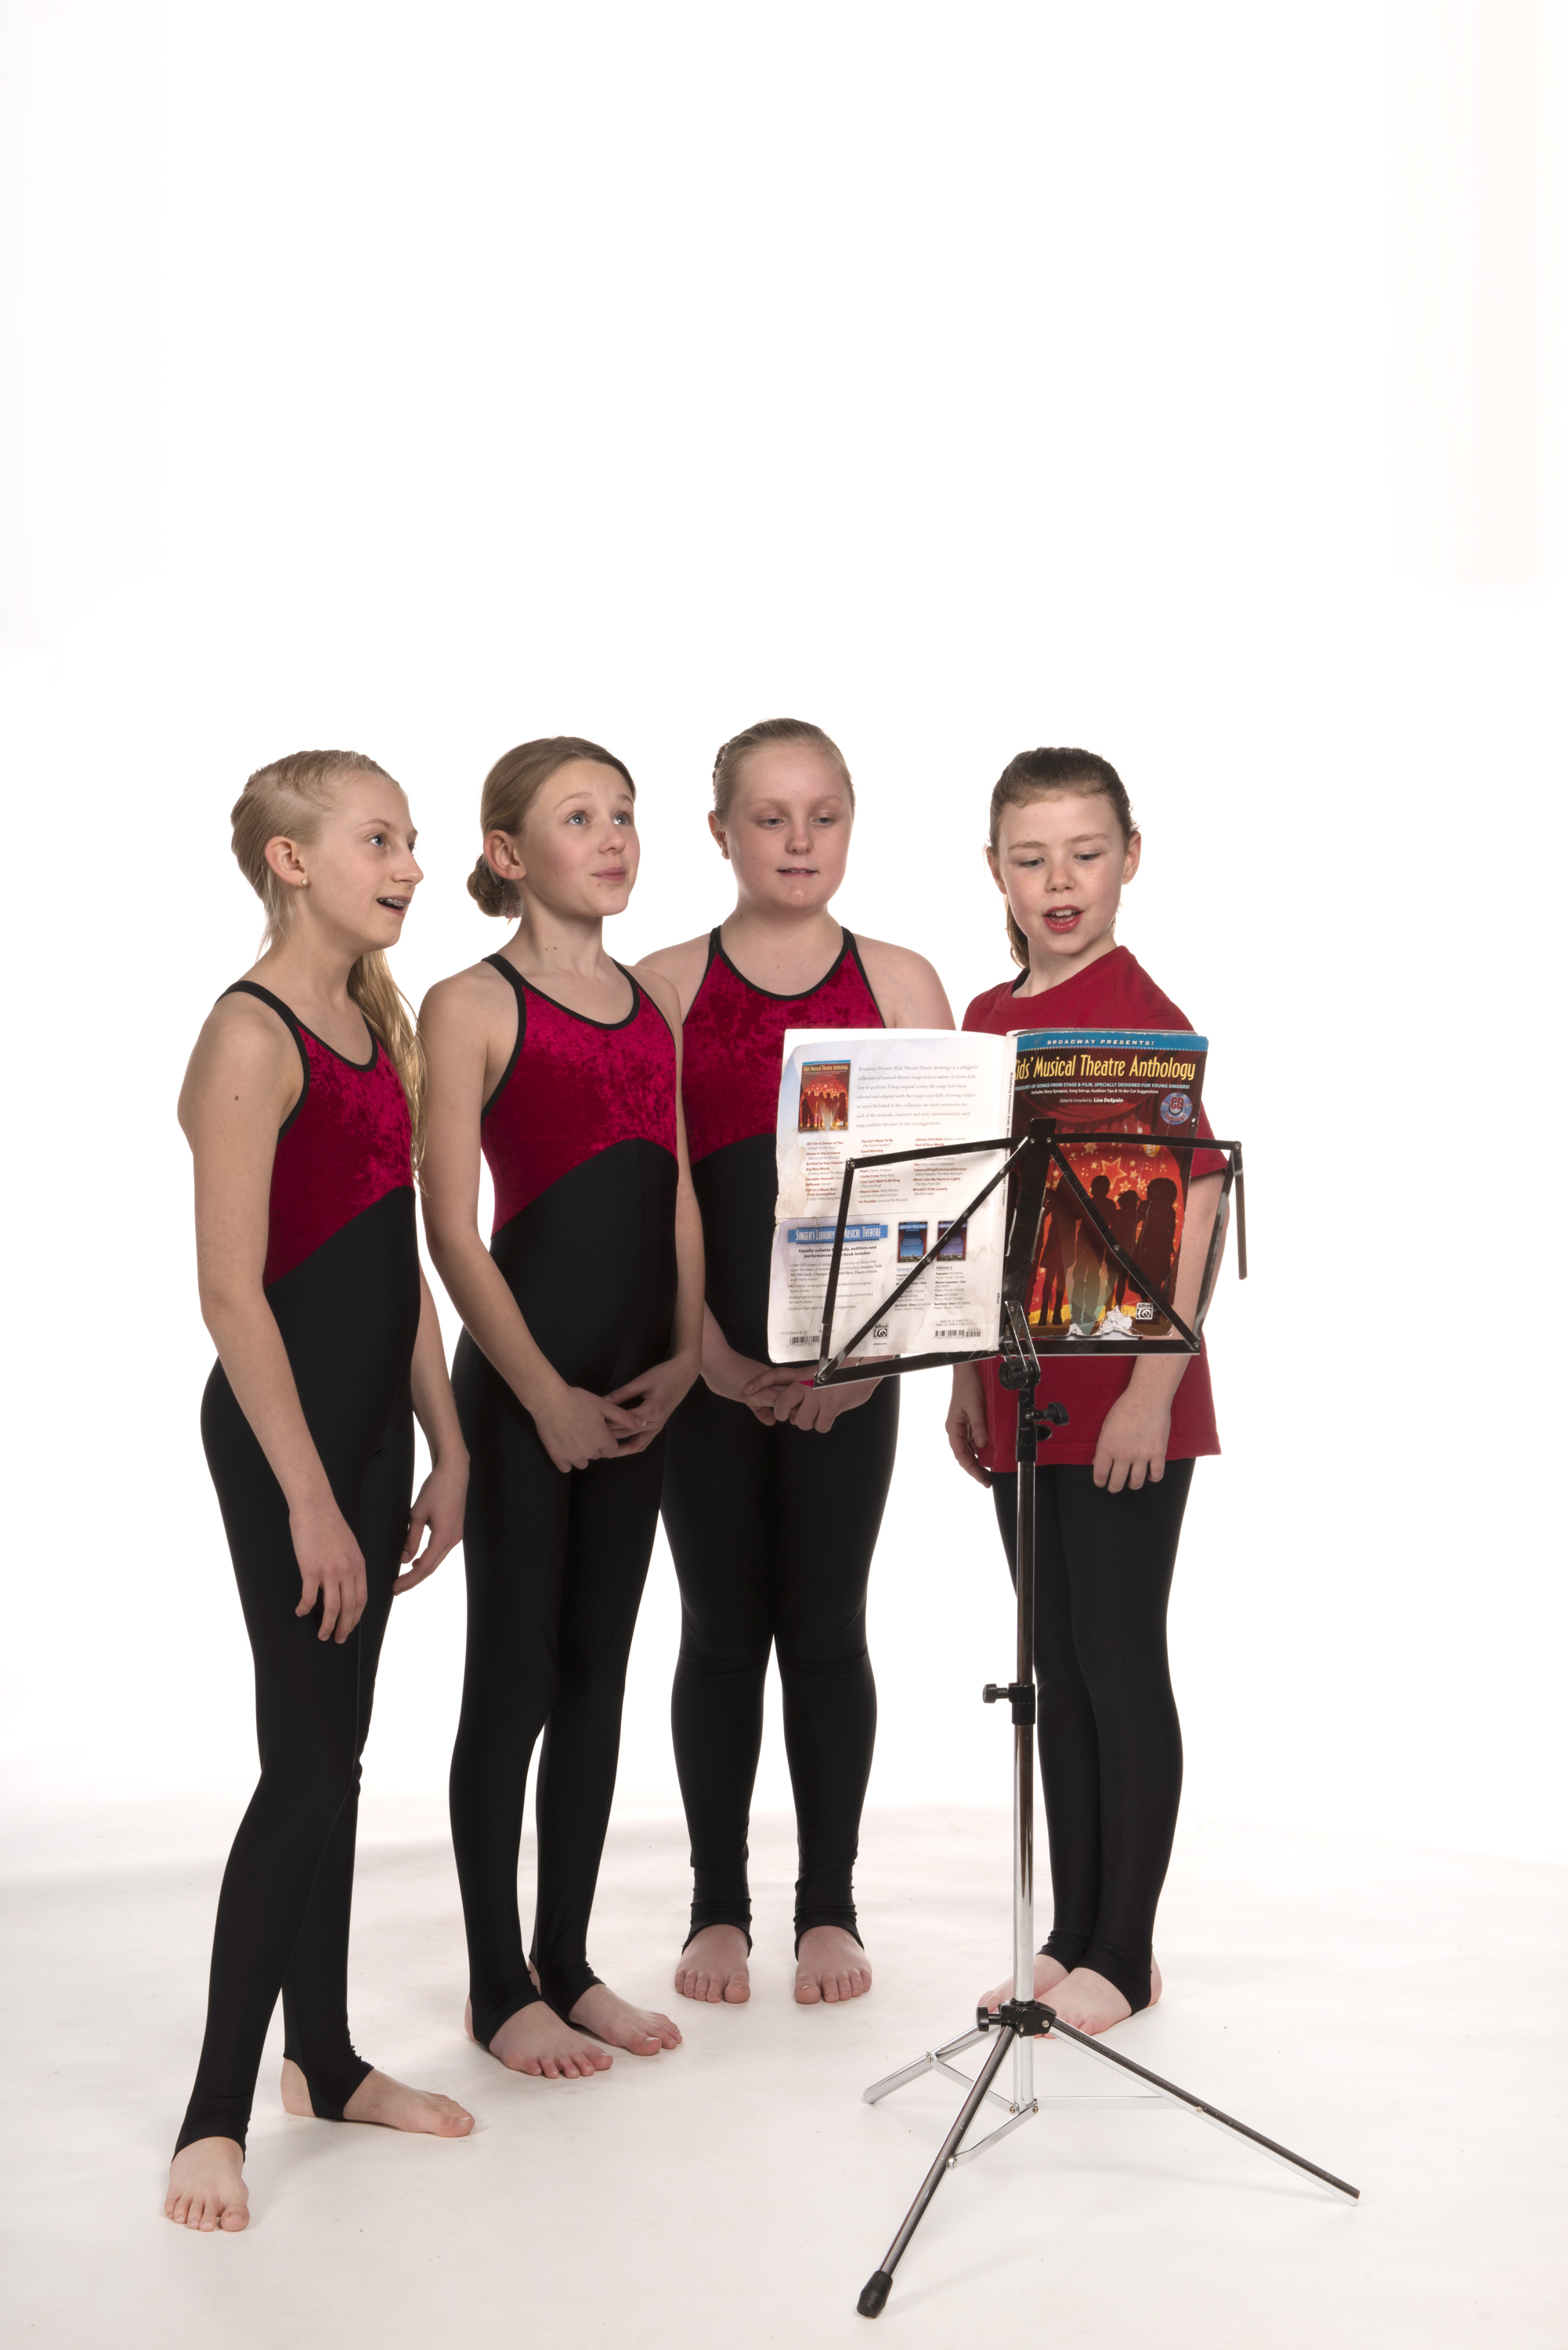 school of the performing arts for School of performing arts offering undergraduate and postgraduate courses.